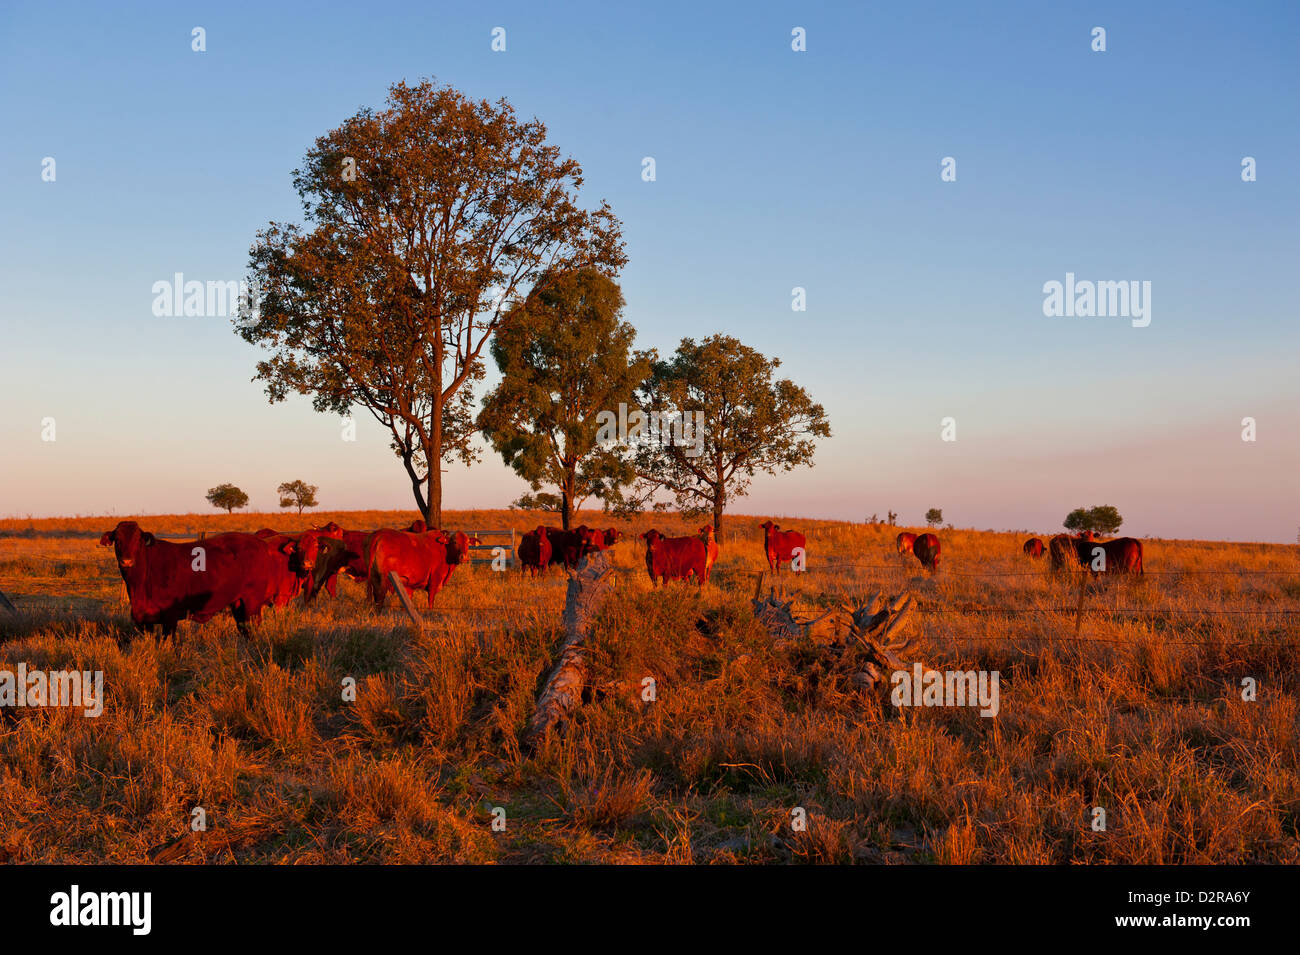 Cattle in the late afternoon light, Carnarvon Gorge, Queensland, Australia, Pacific - Stock Image